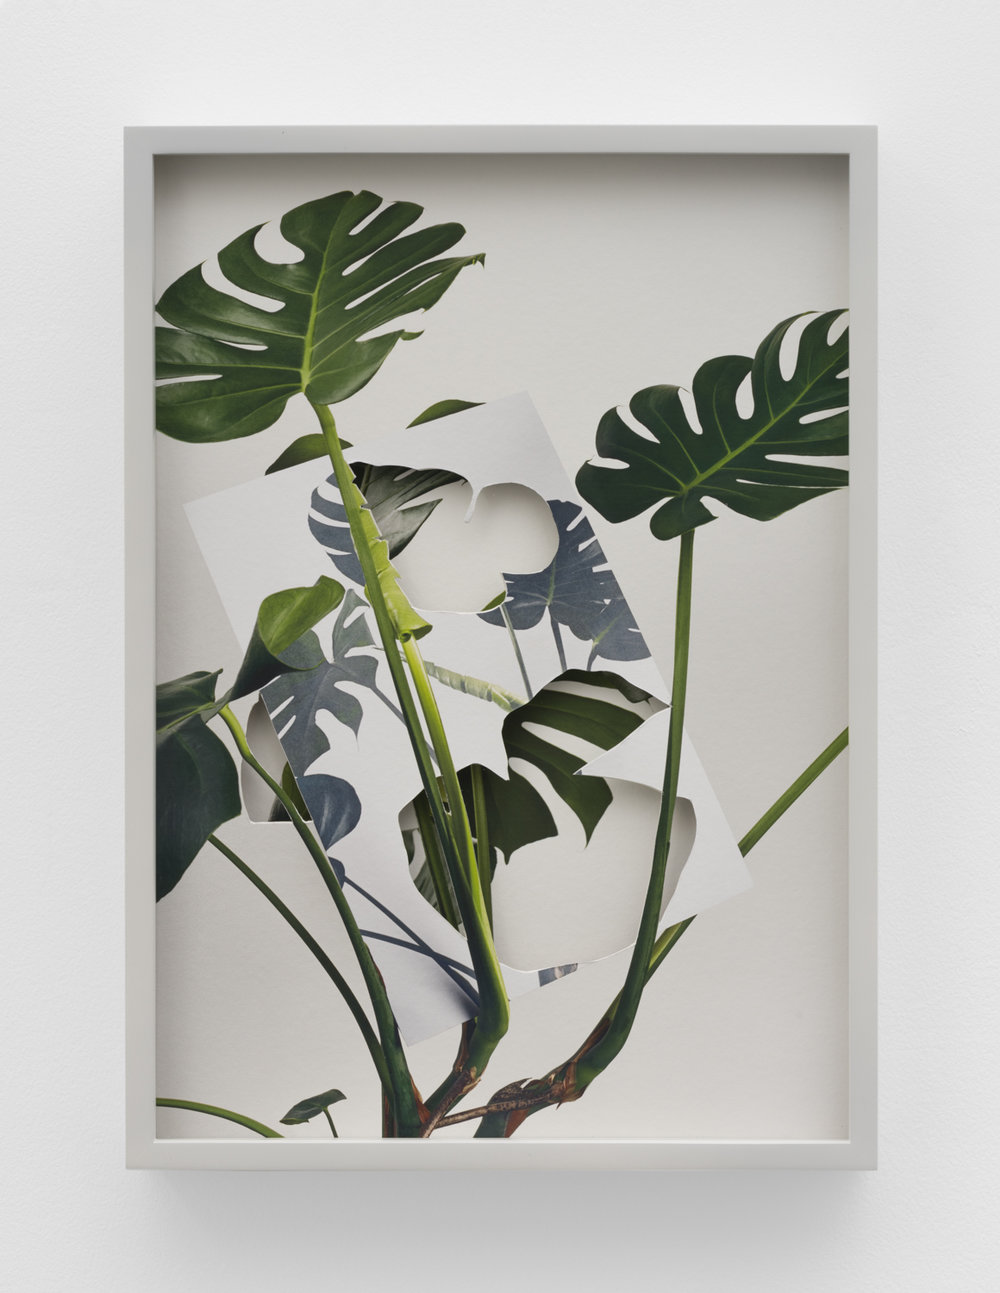 Alma Haser,  Monstera Deliciosa , 2018  Layered and cut digital pigment prints (2 layers), 47 x 35 cm total (approx. 18.5 x 13.75 in) with custom color frame, edition of 7, $1600   Inquire